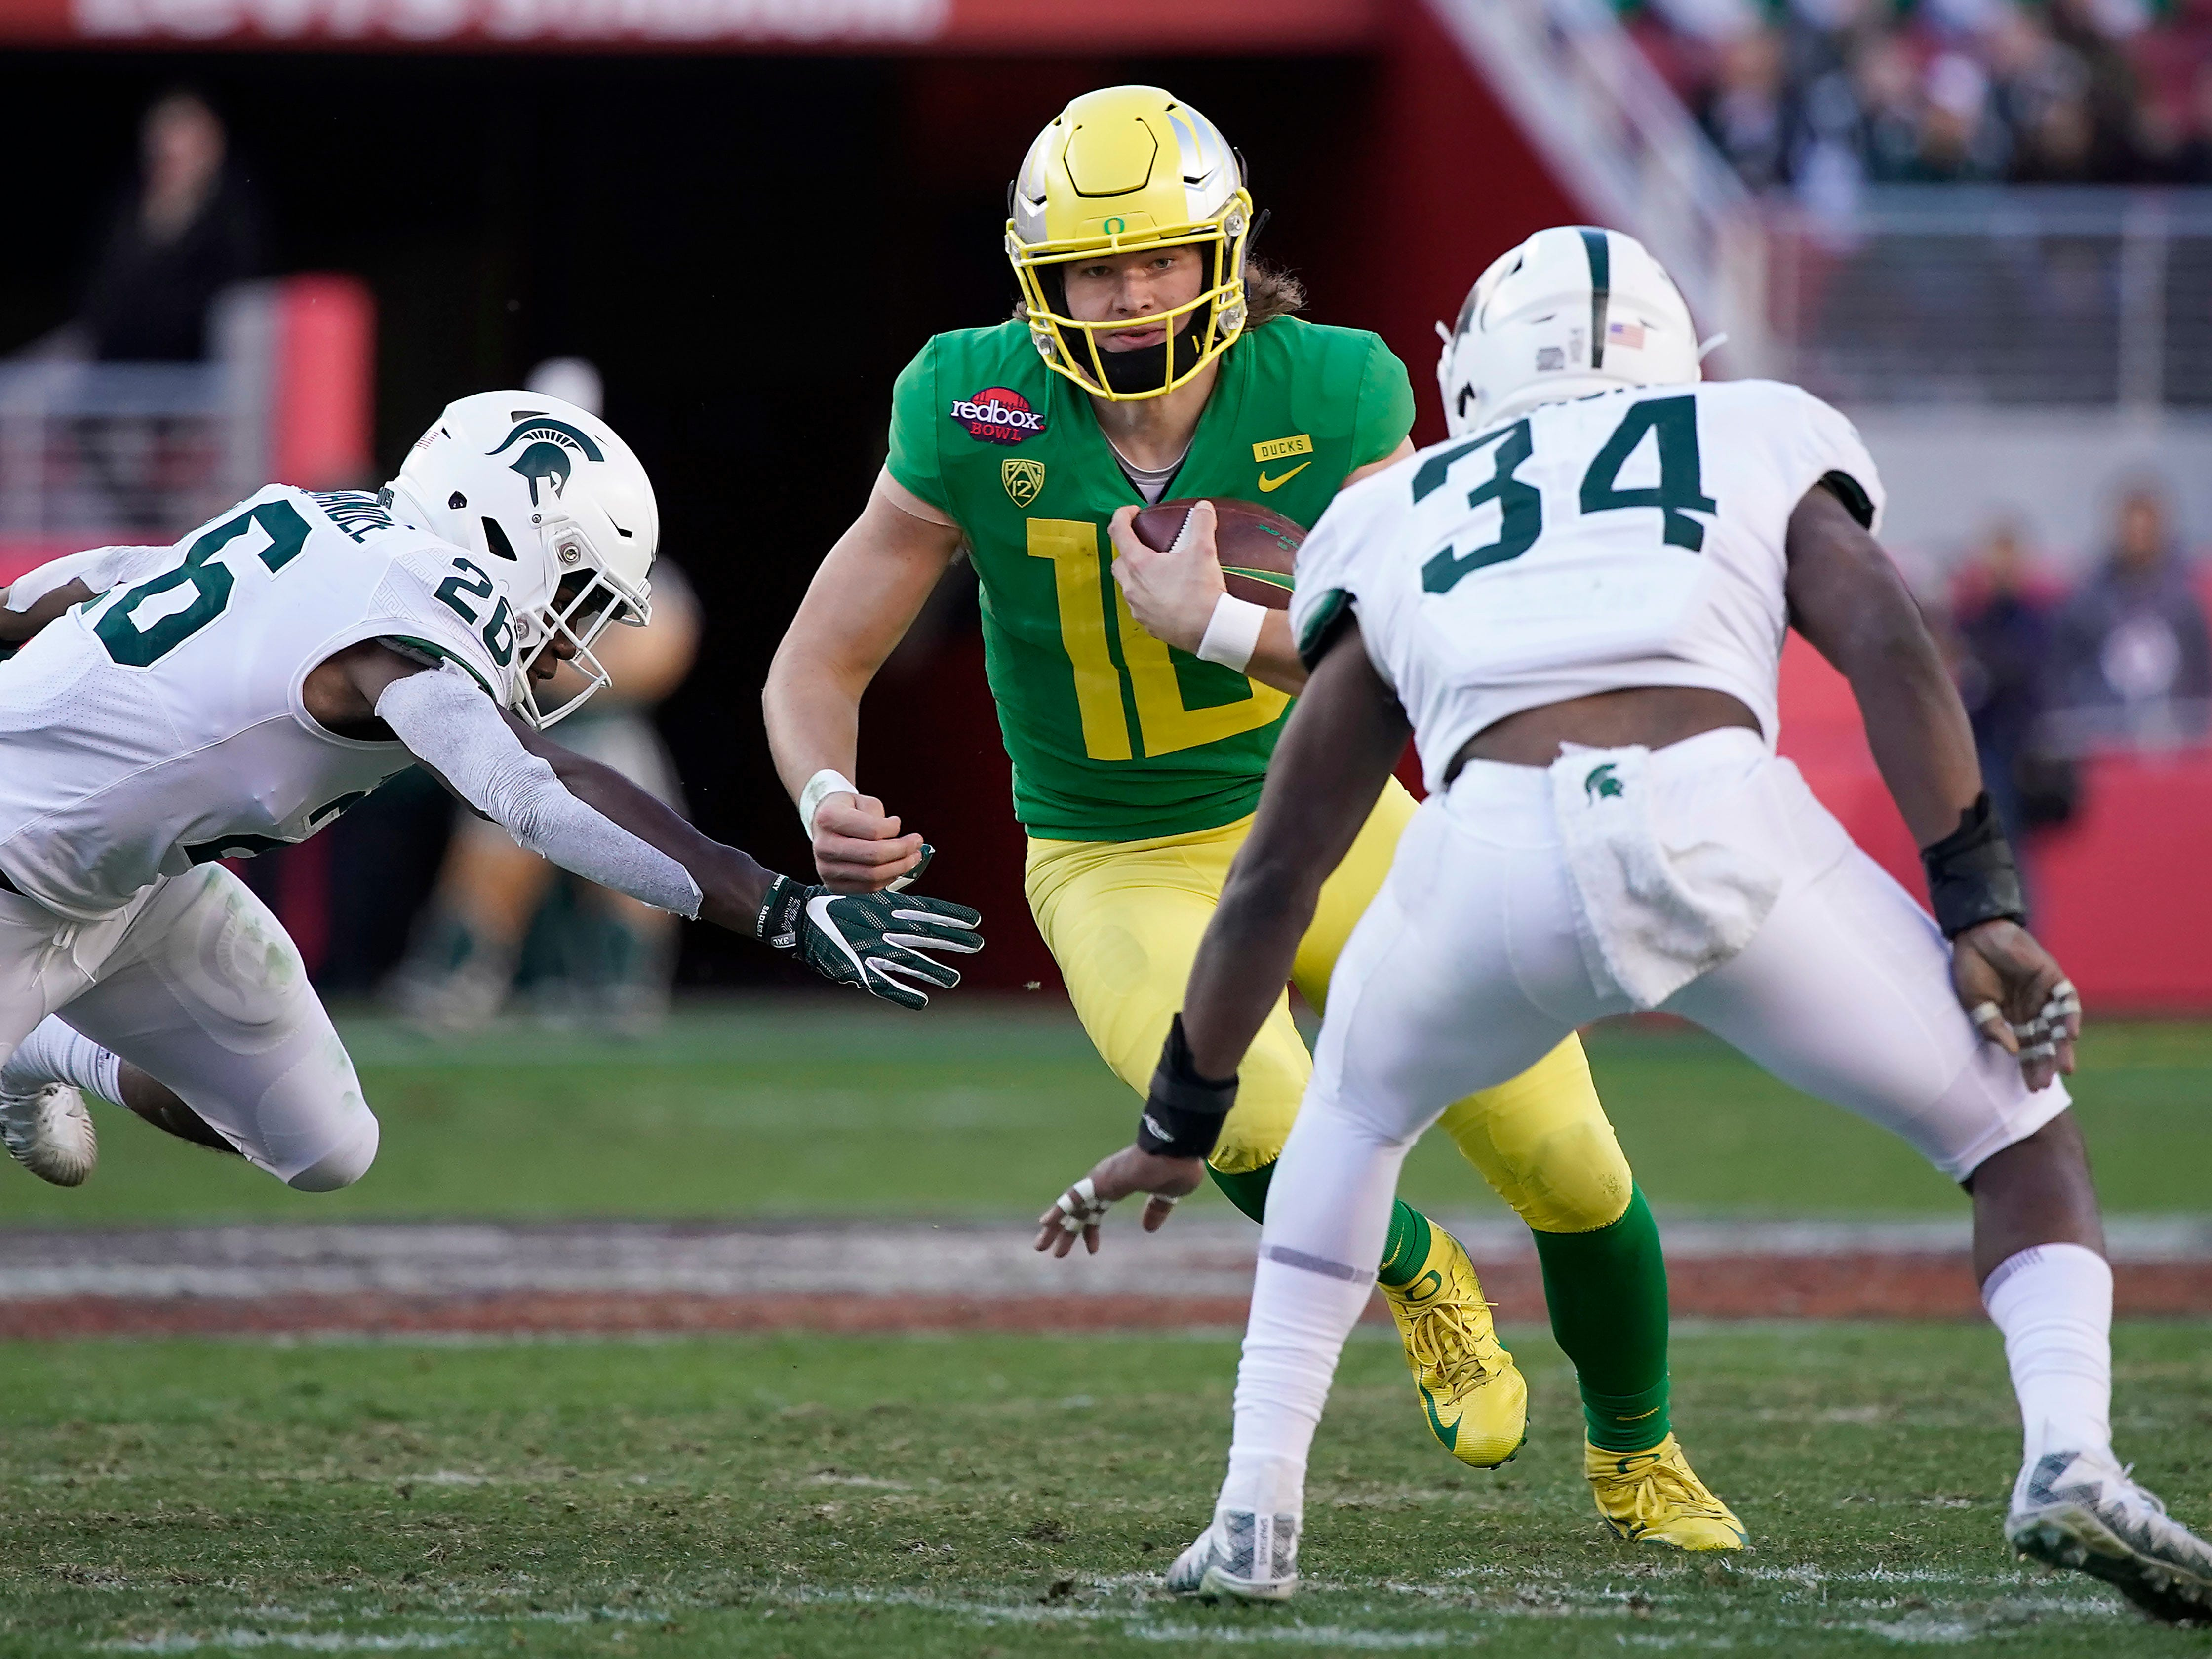 Oregon quarterback Justin Herbert (10) scrabbles out of the pocket between Michigan State linebackers Brandon Bouyer-Randle (26) and Antjuan Simmons (34) during the second half of the Redbox Bowl NCAA college football game Monday, Dec. 31, 2018, in Santa Clara, Calif. Oregon won 7-6.